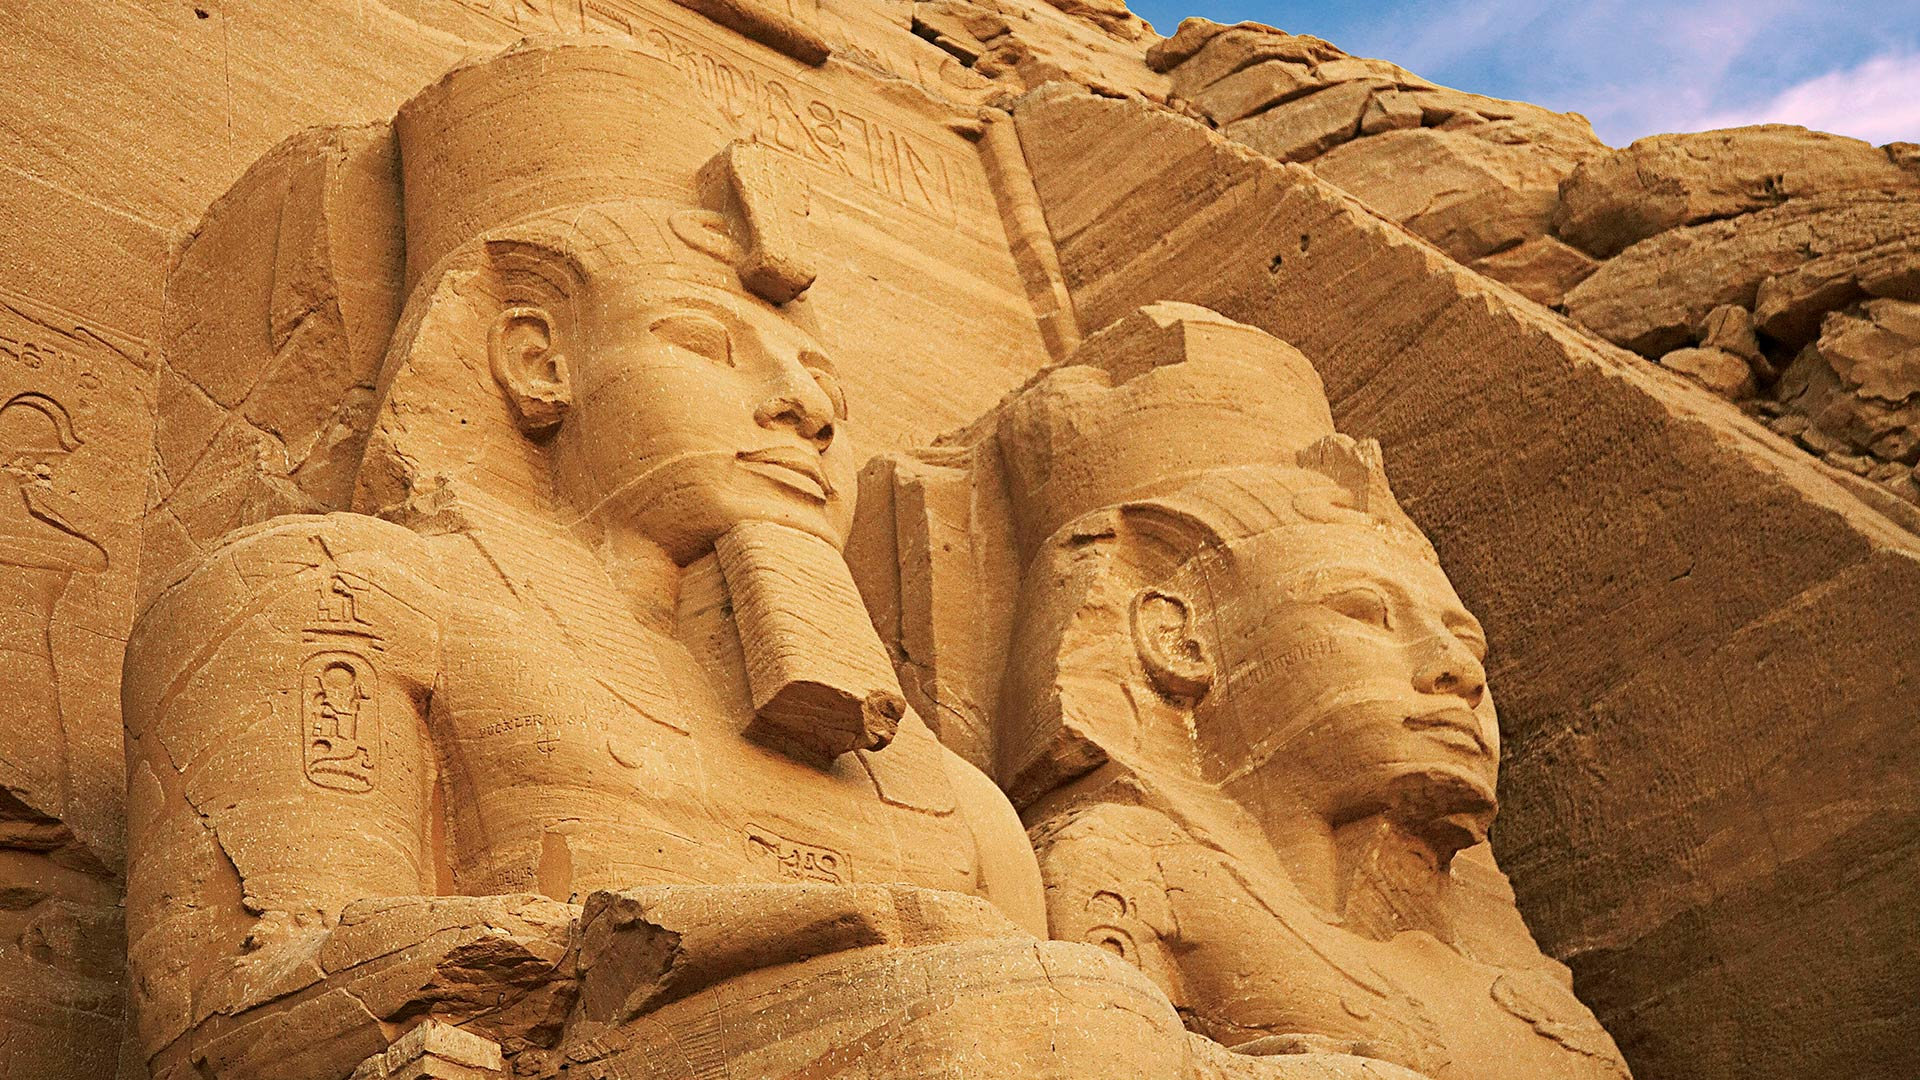 Colossal statues at the Greater Temple of Ramses II in Abu Simbel, Egypt